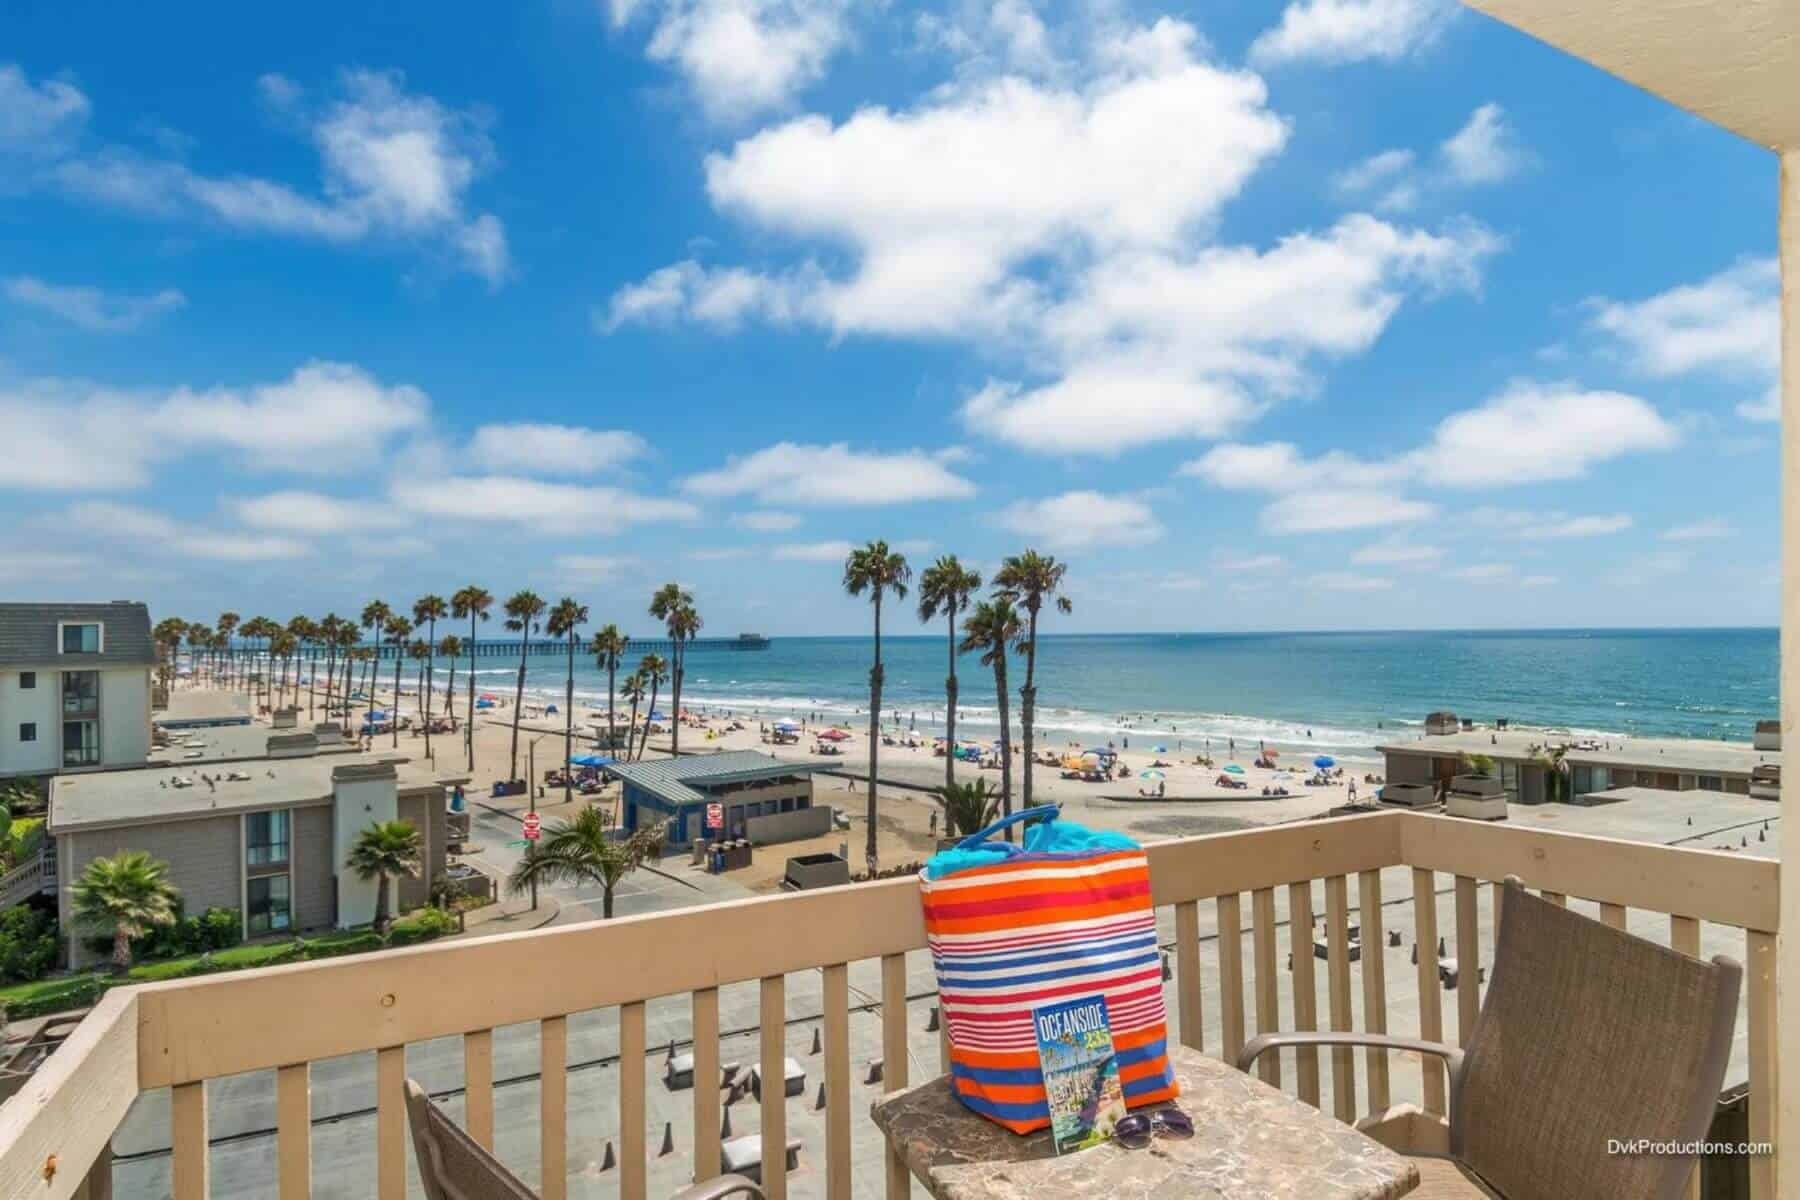 Oceanside Deals and Special Offers - Visit Oceanside